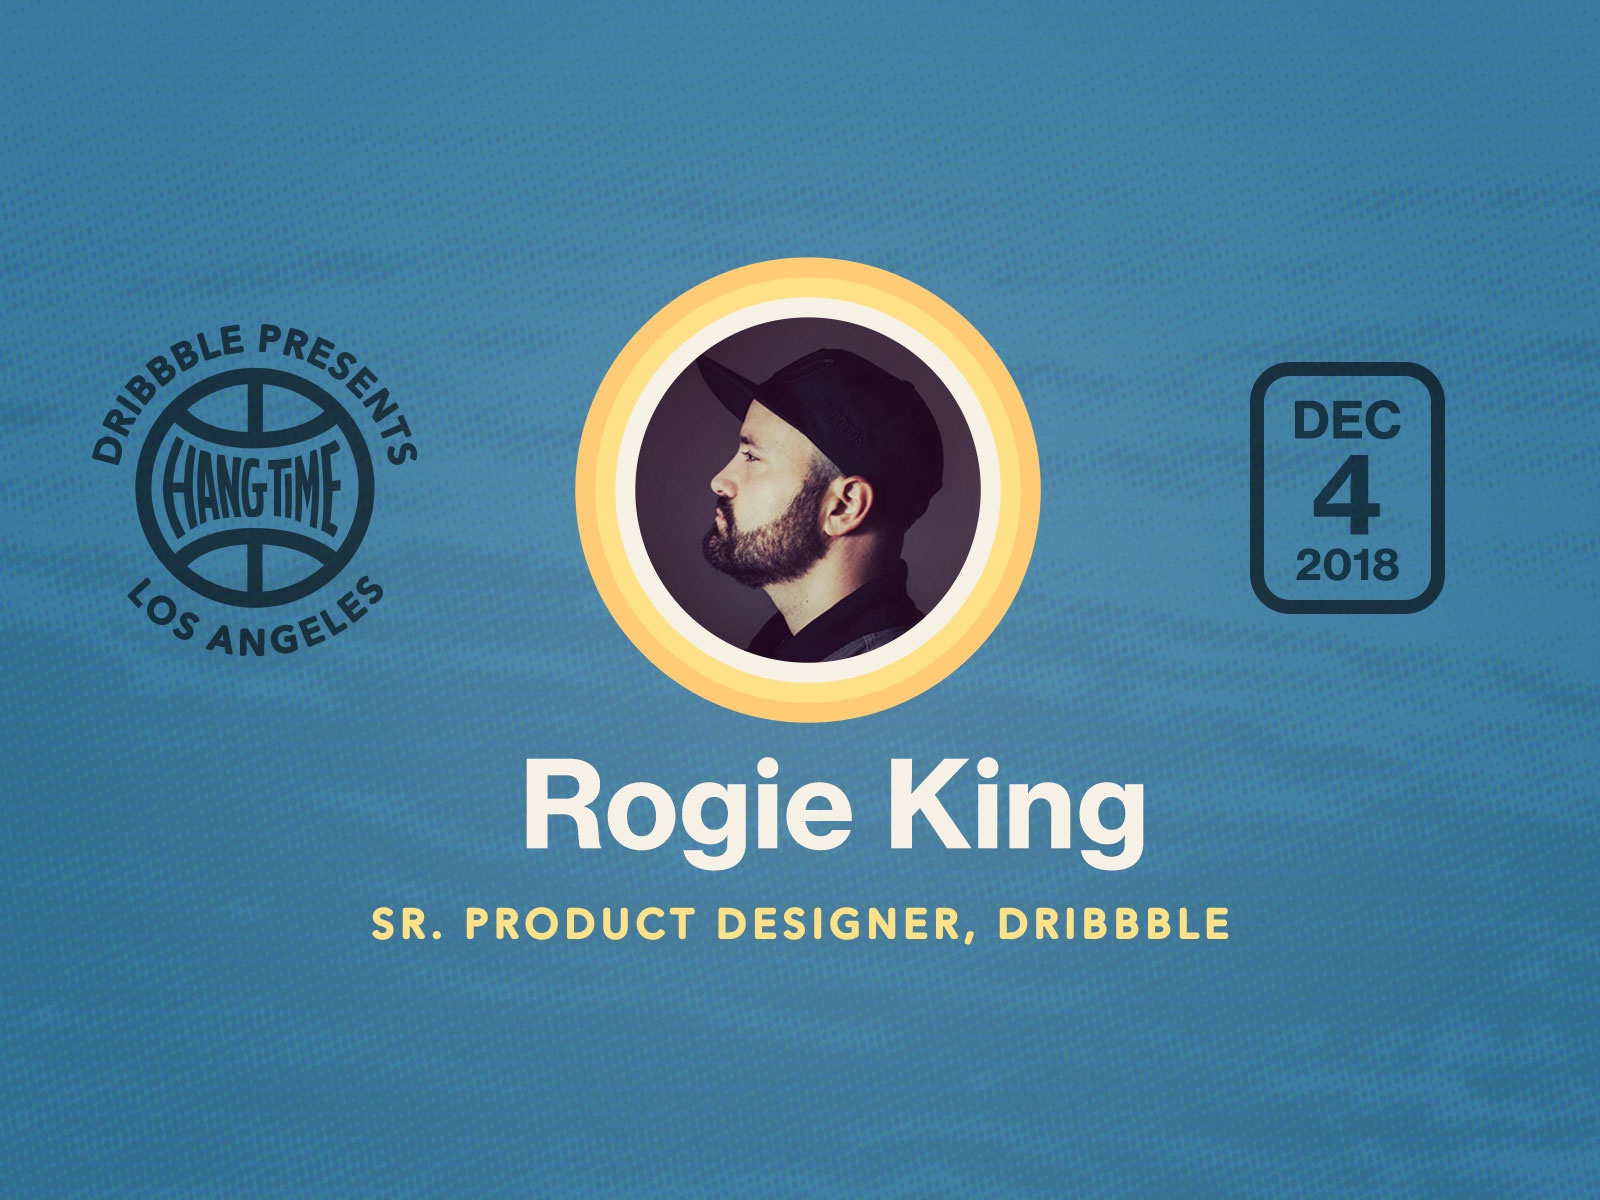 Hang Time LA Speaker Spotlight on Rogie King